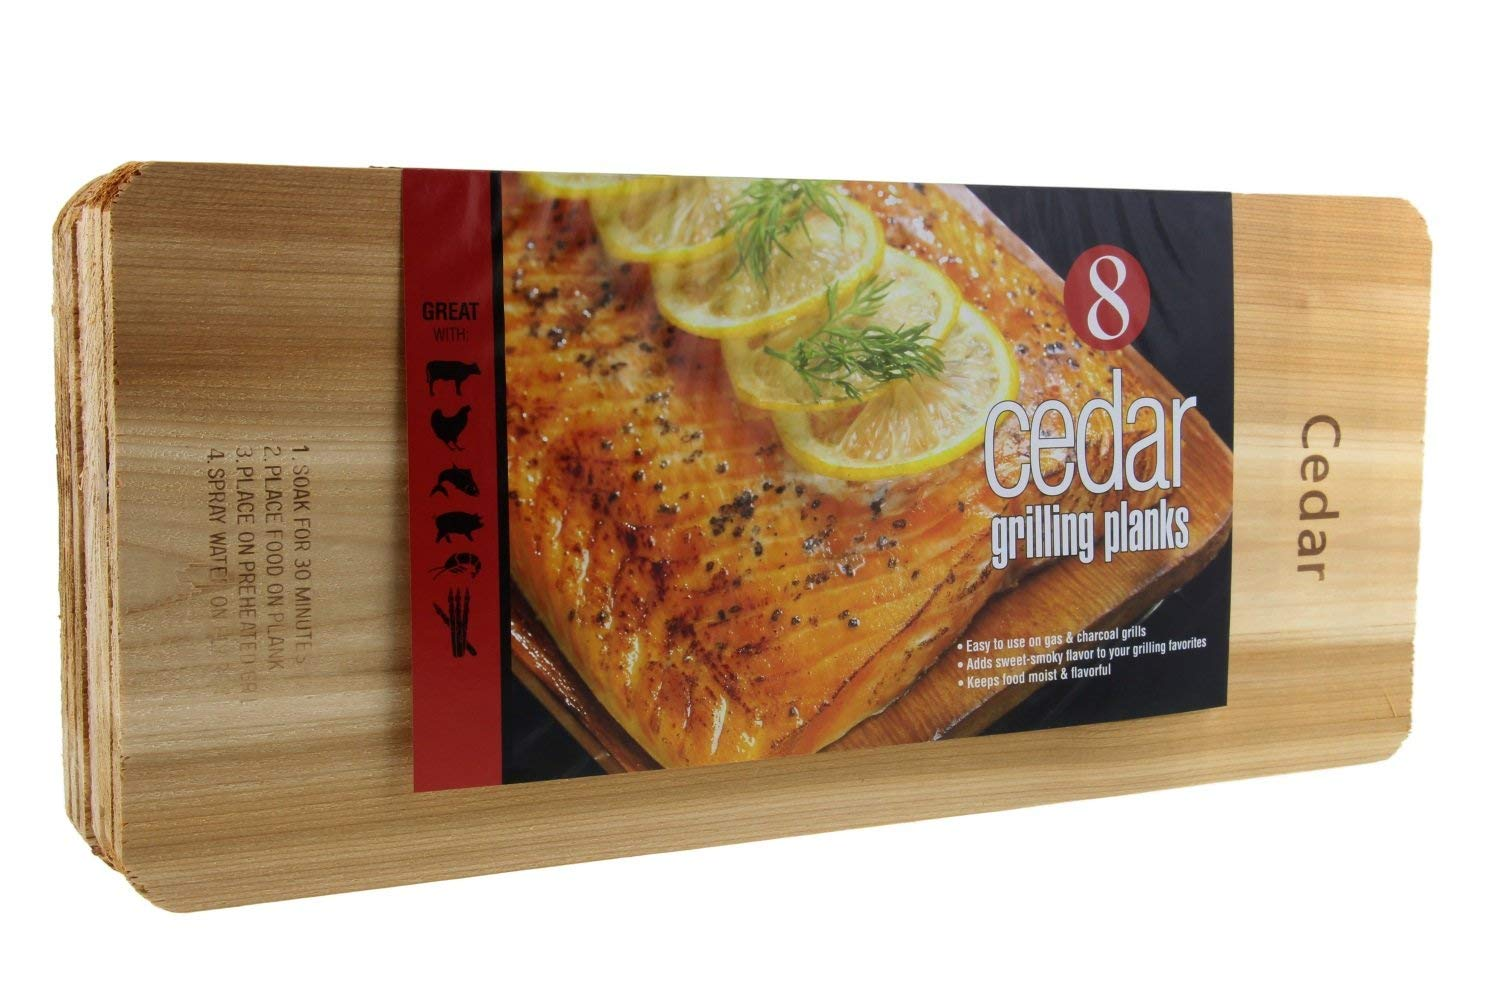 "Coastal Cuisine Cedar Grilling Planks, Simply Soak, Smoke, & Serve- Designed for Moist & Flavorful Fish, Meat, and Veggies – Add Sweet-Smoky Flavor to your Grilling Favorites, 7x16"" Set of 8"